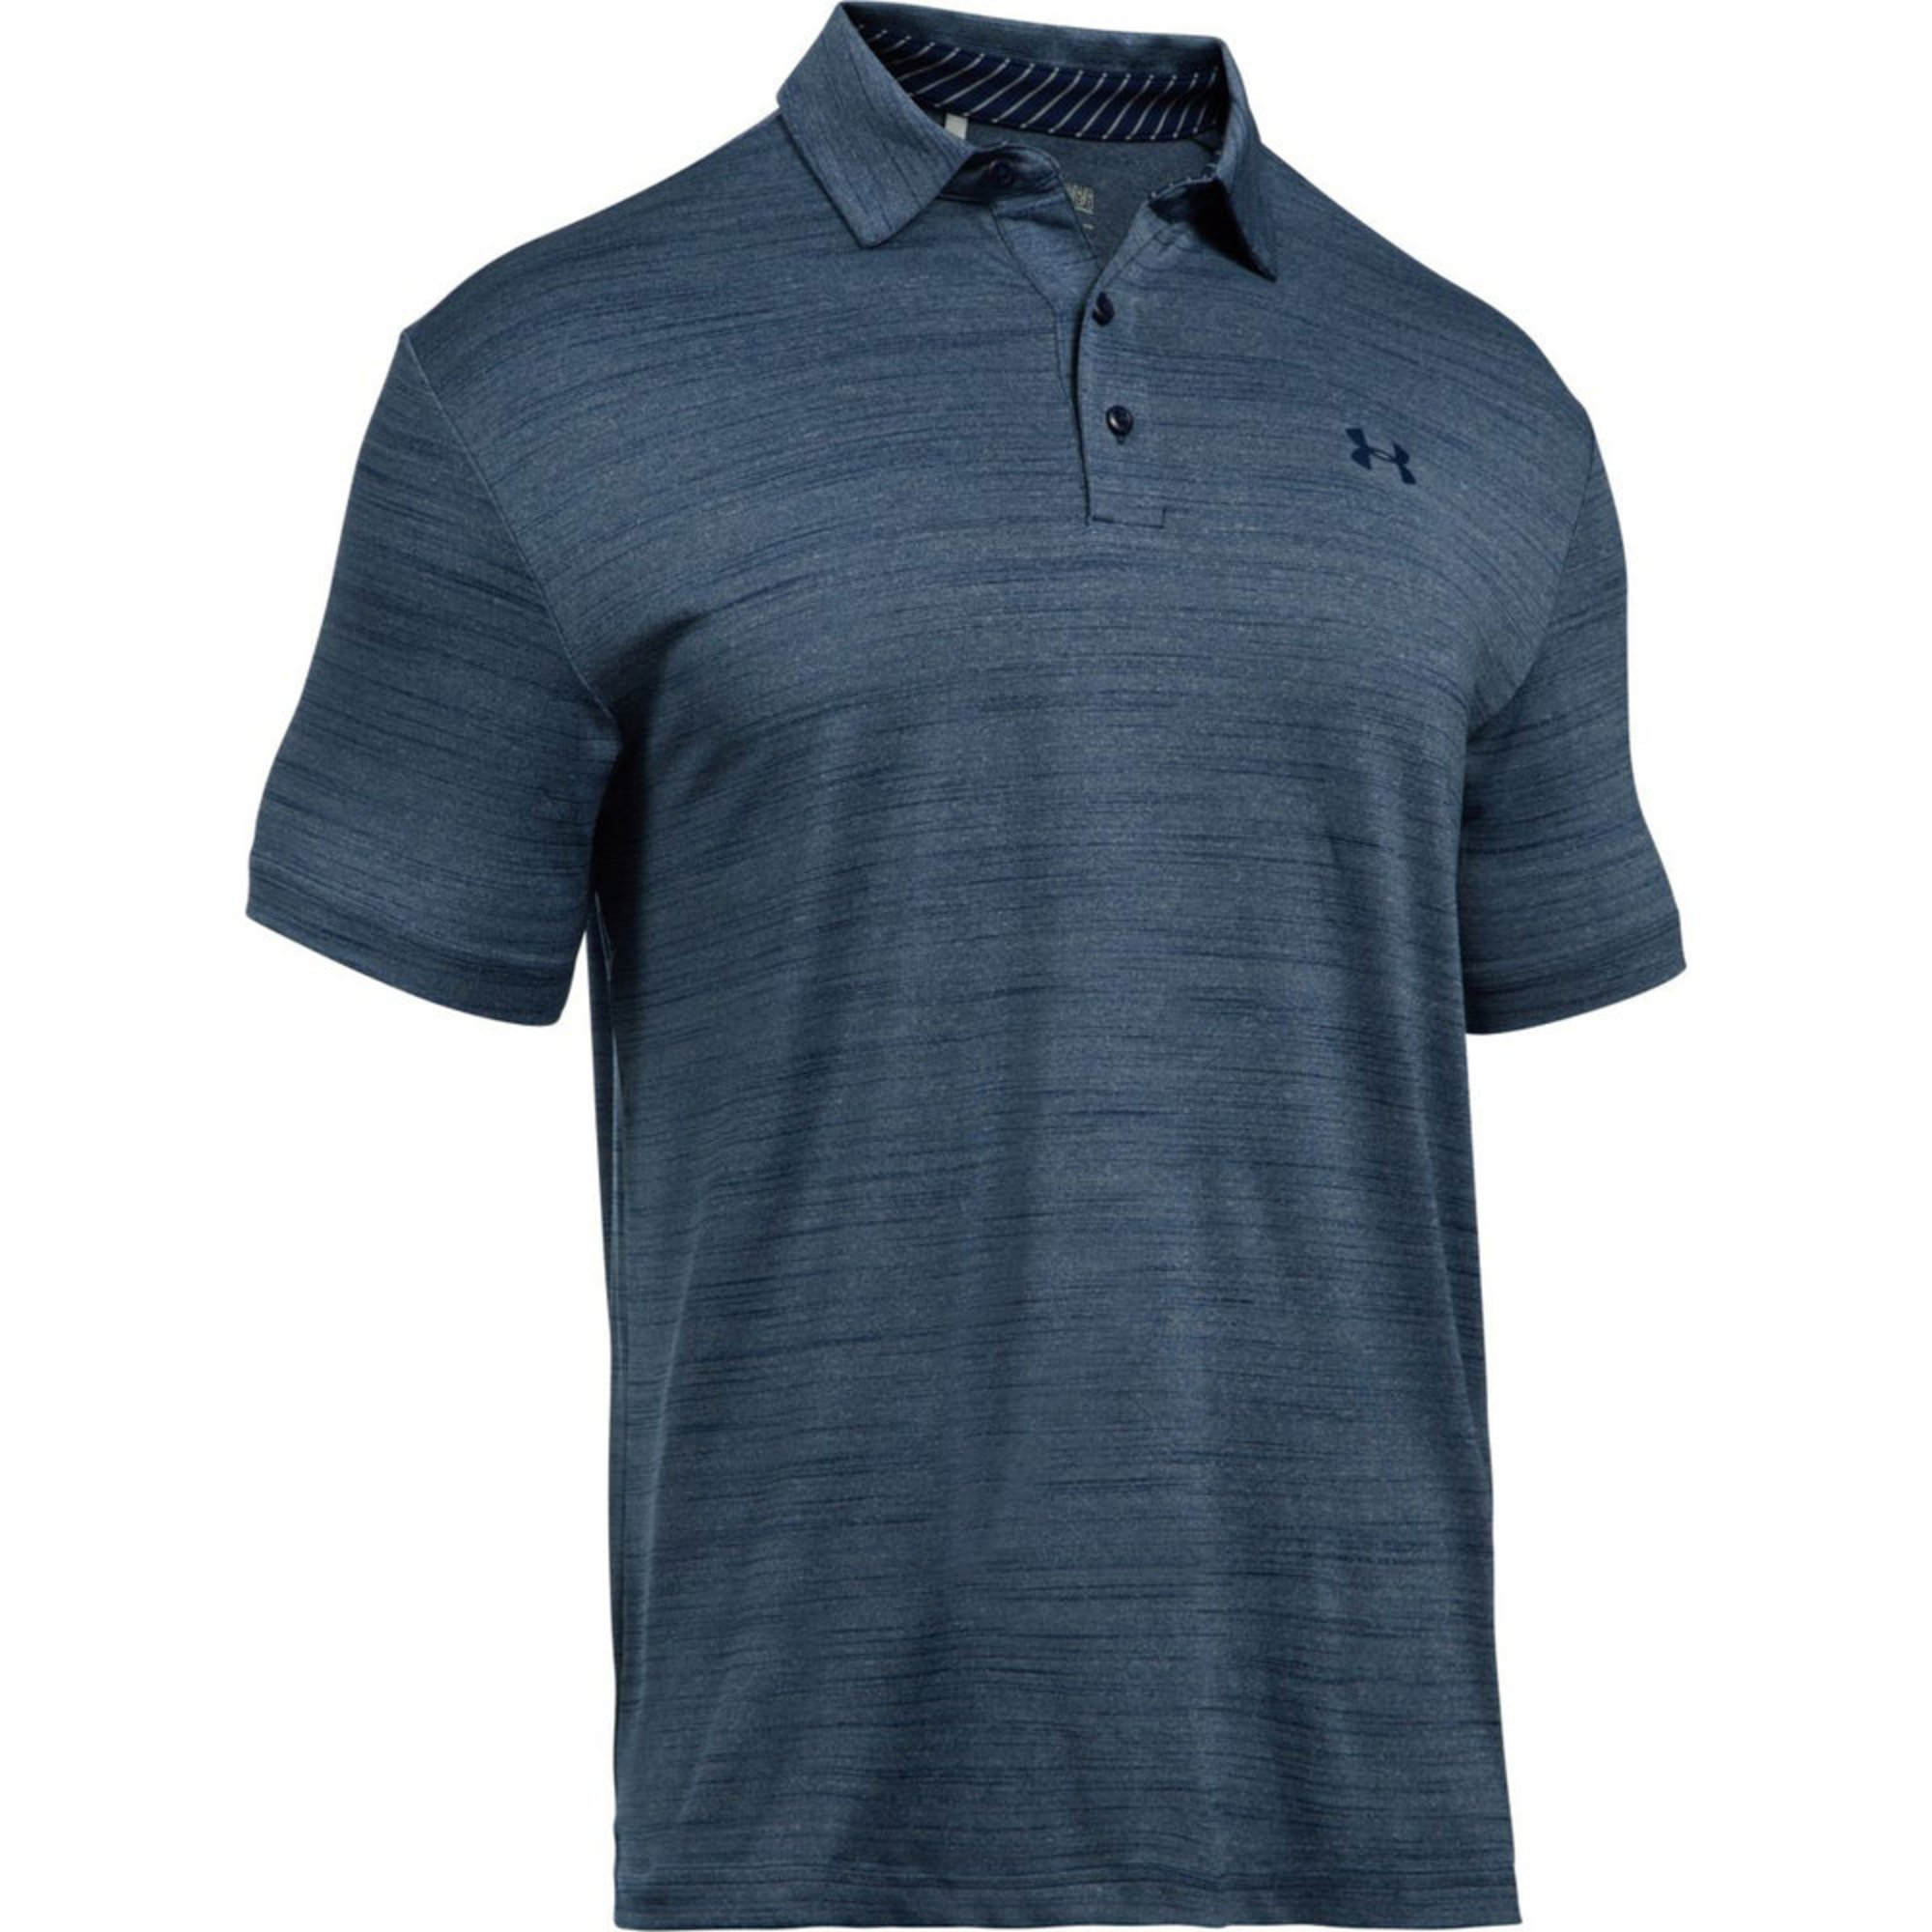 Under armour men 39 s playoff polo academy white men 39 s for Under armour men s shirts clearance